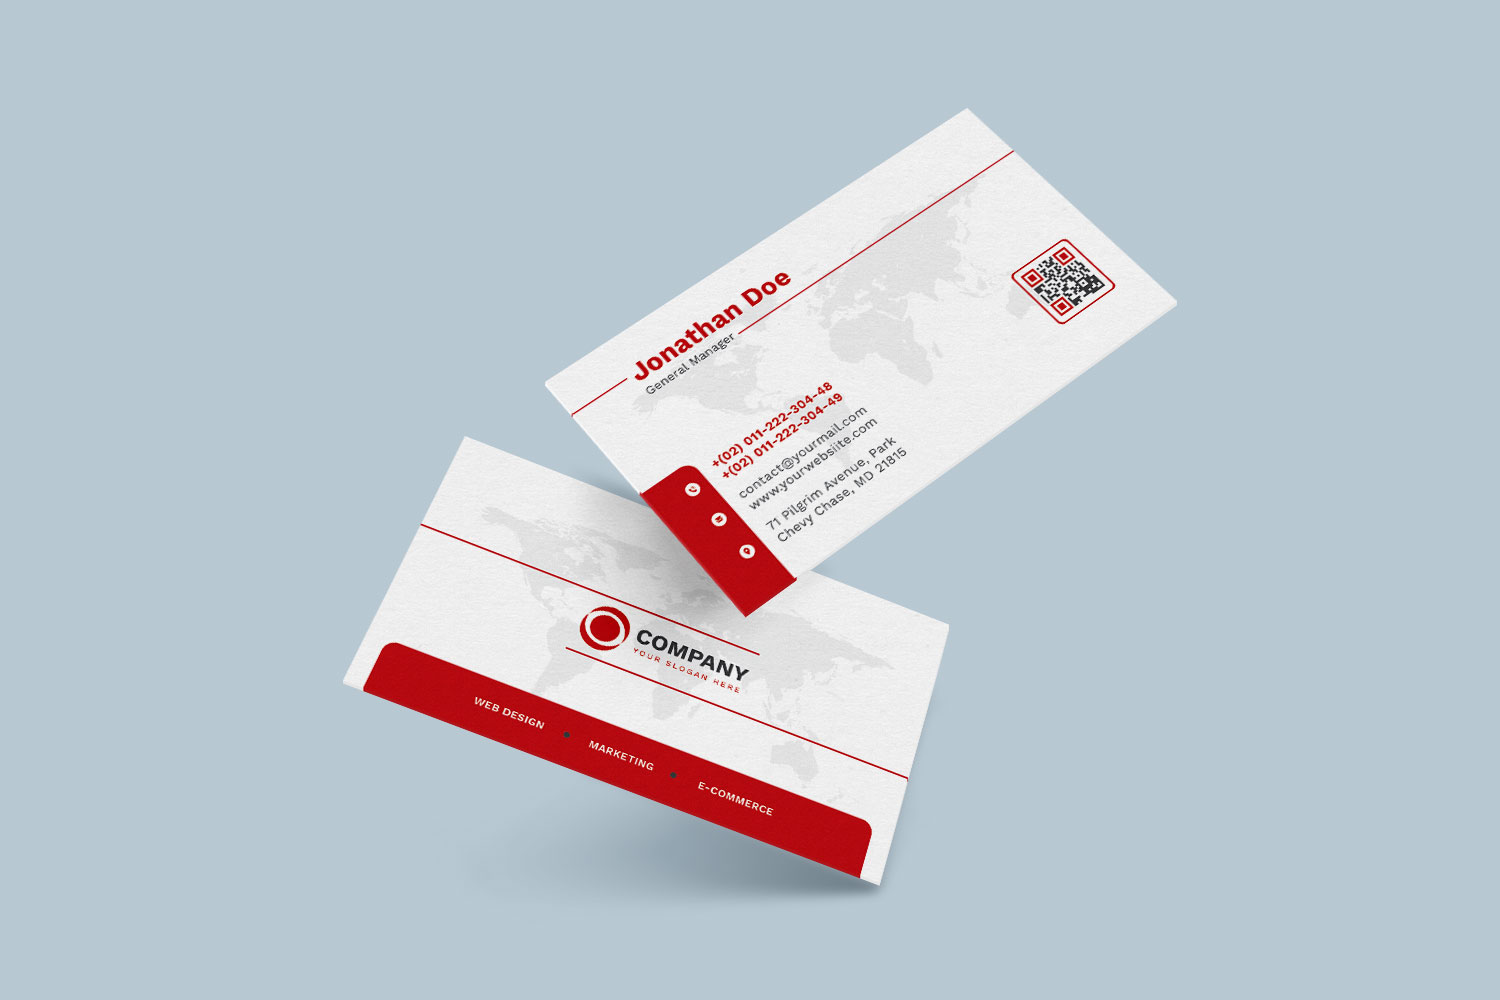 Business Card example image 5